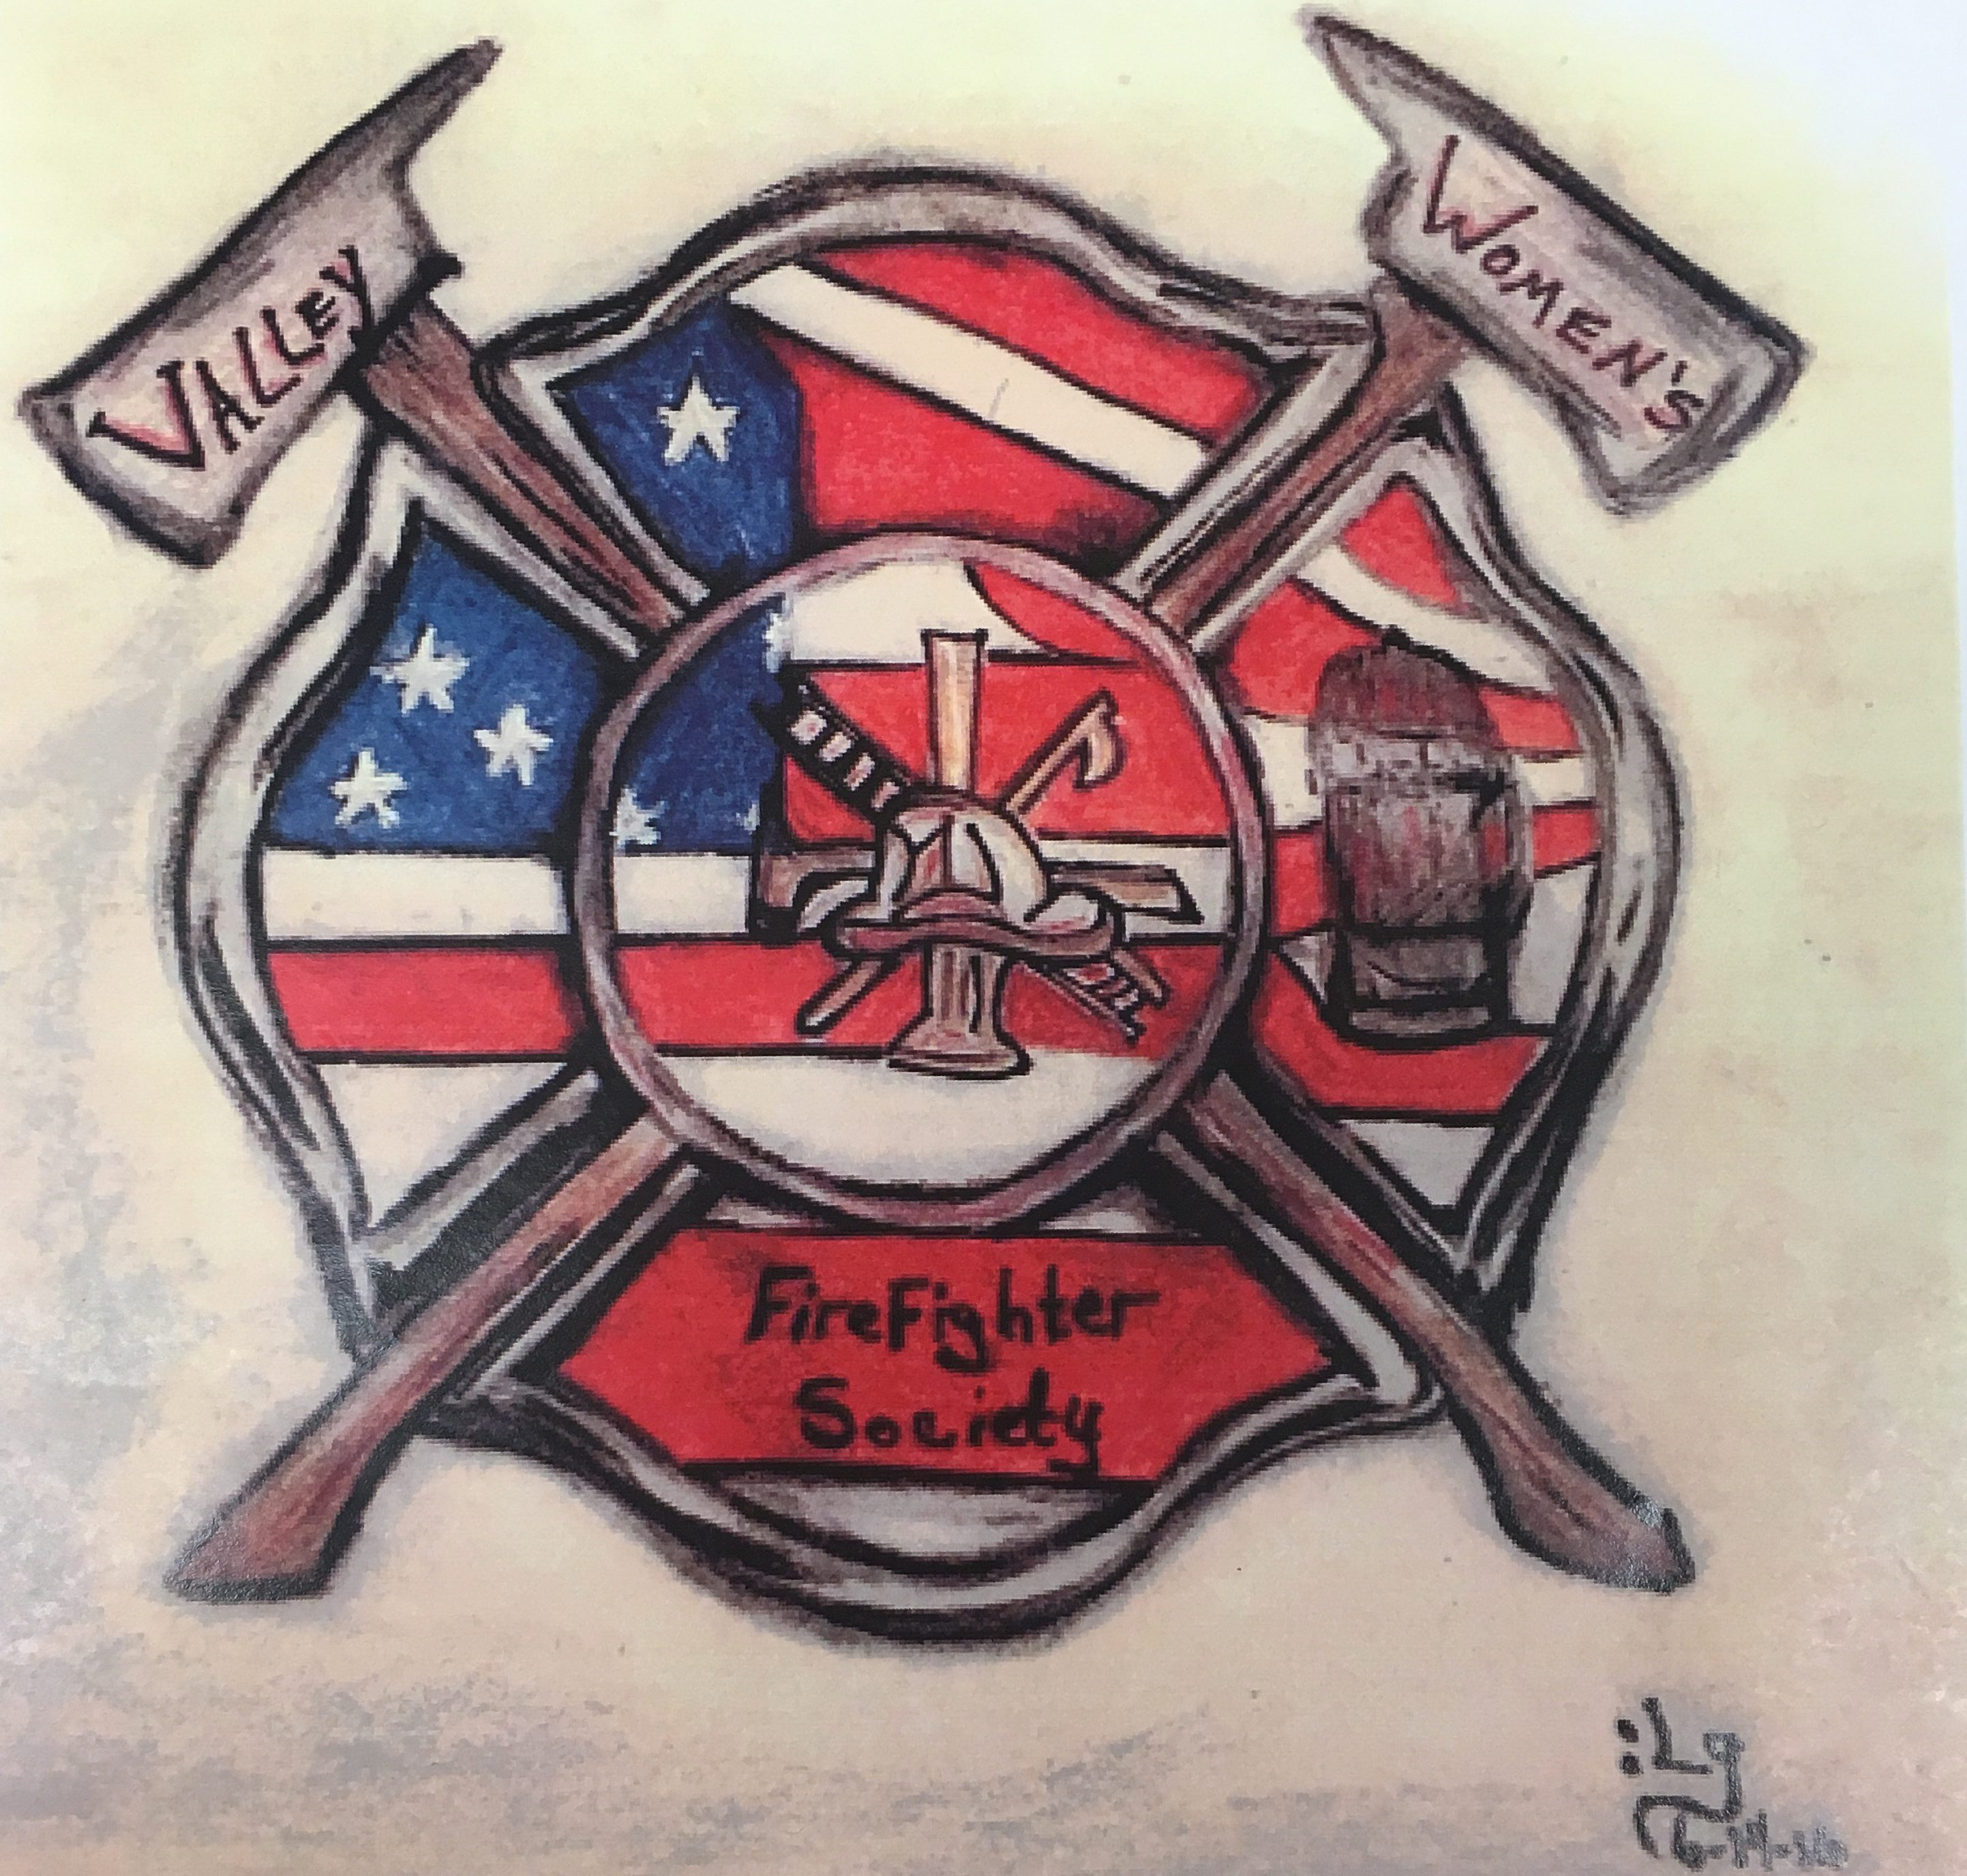 Valley Women's Firefighter Society